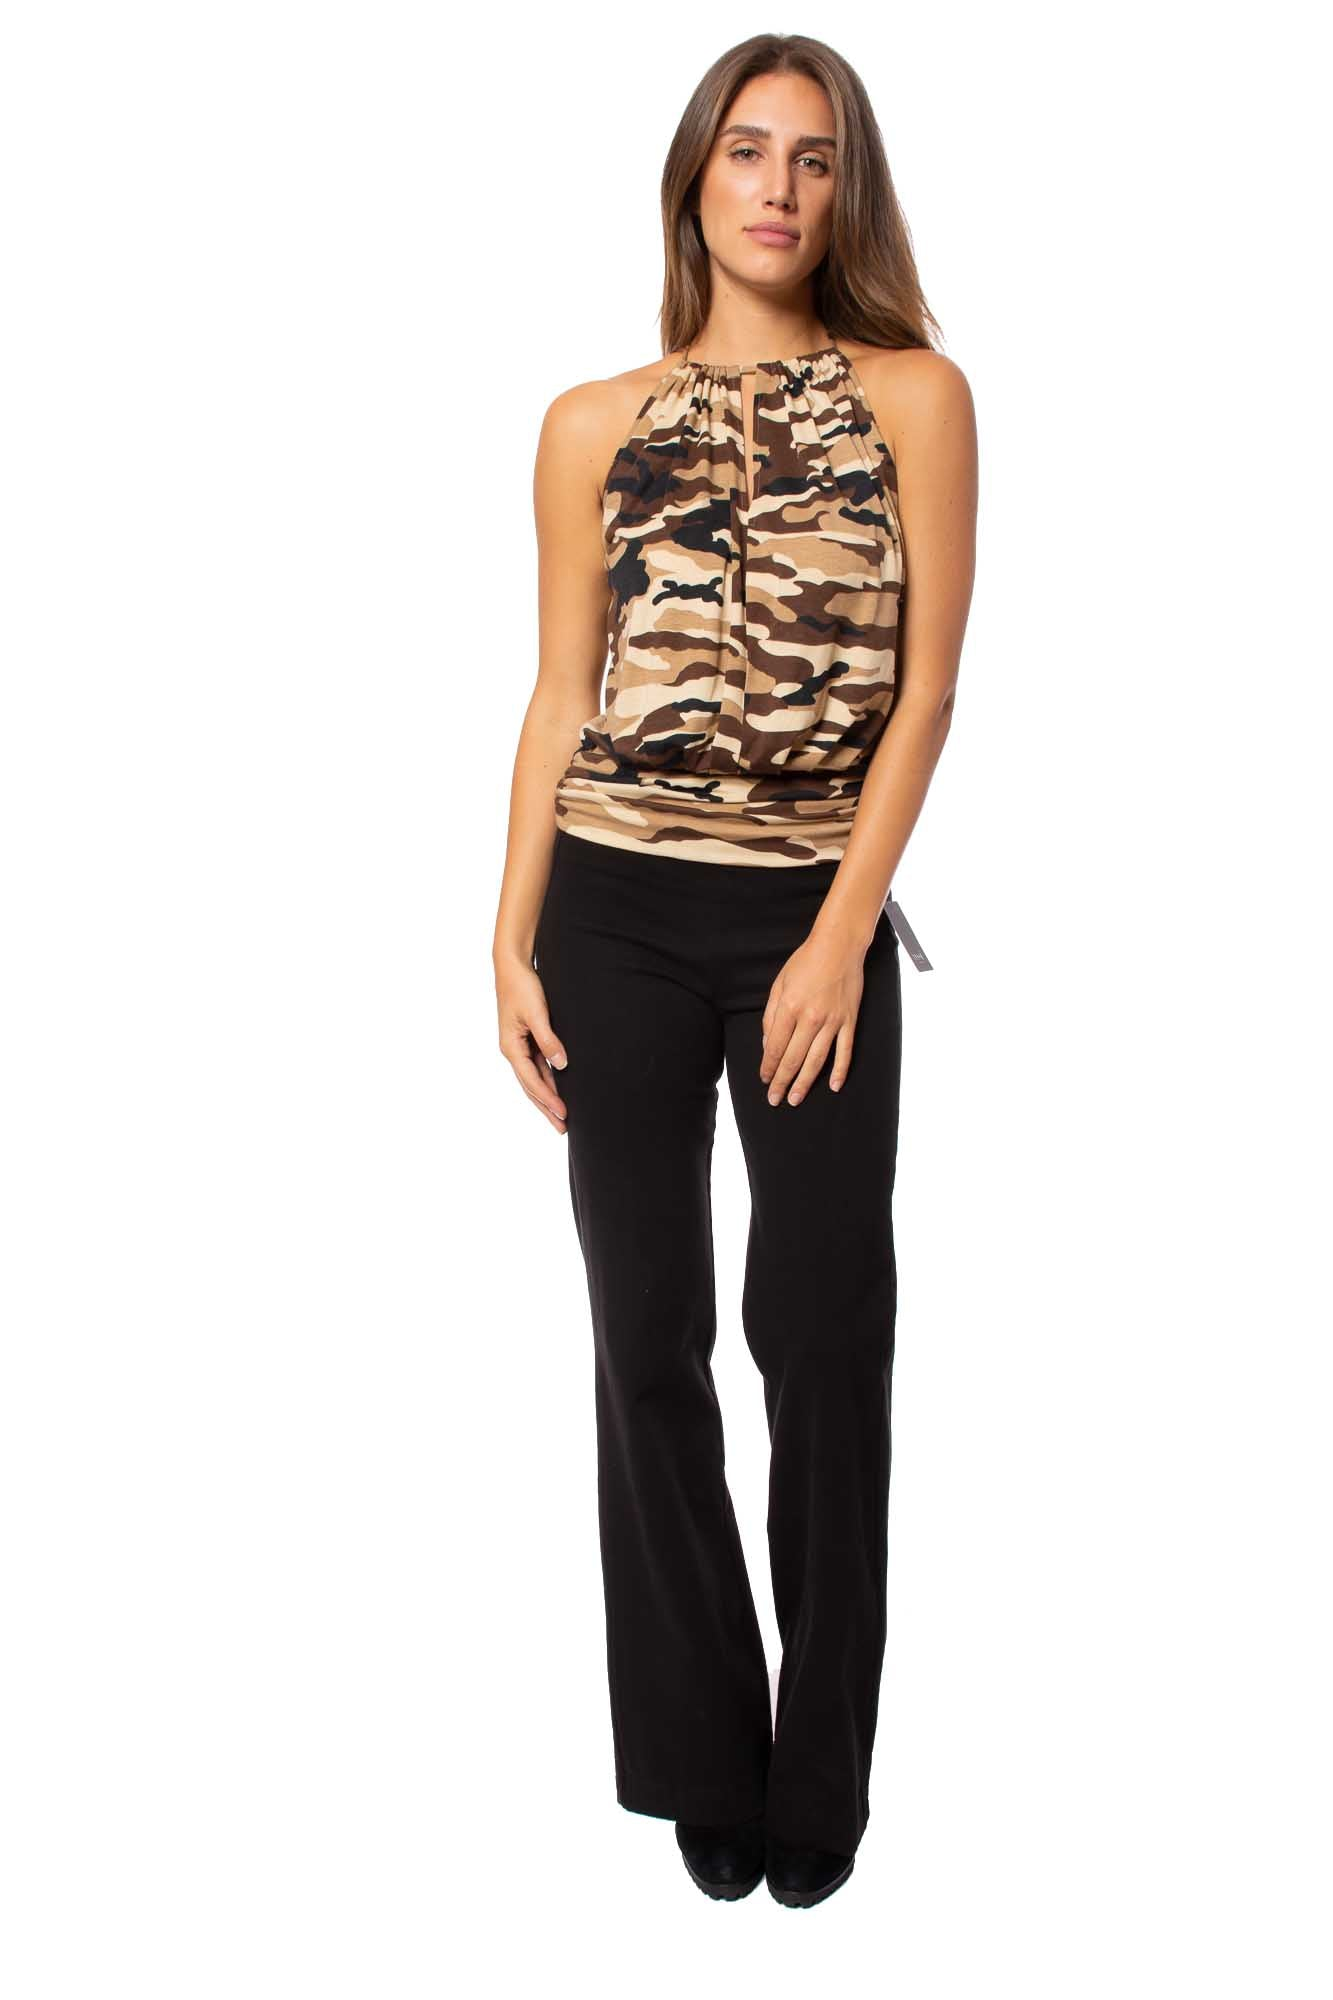 Julian Chang - Atina 20 Drawstring Neck Tie Sleevless Camo Tank (1660, Rambo Camo)